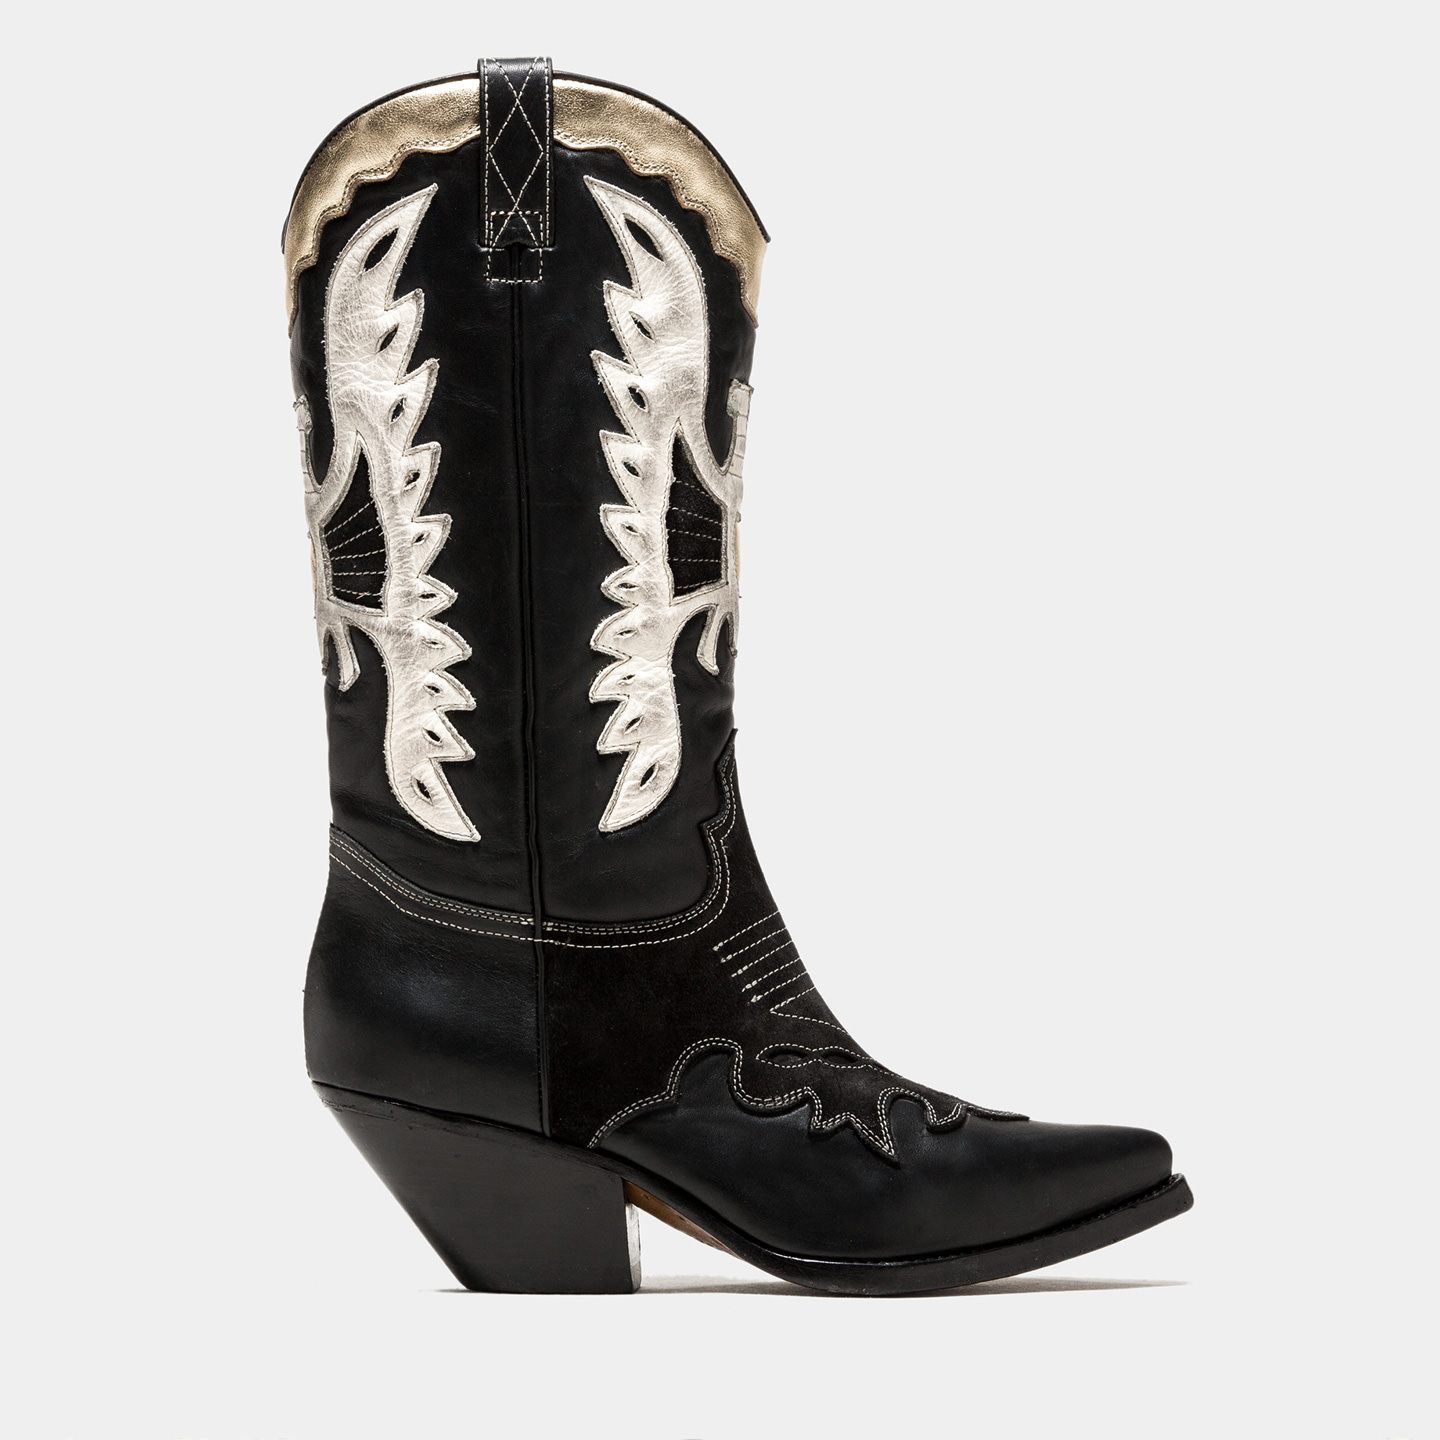 BUTTERO: BLACK ELISE DURANGO BOOTS WITH INLAYS